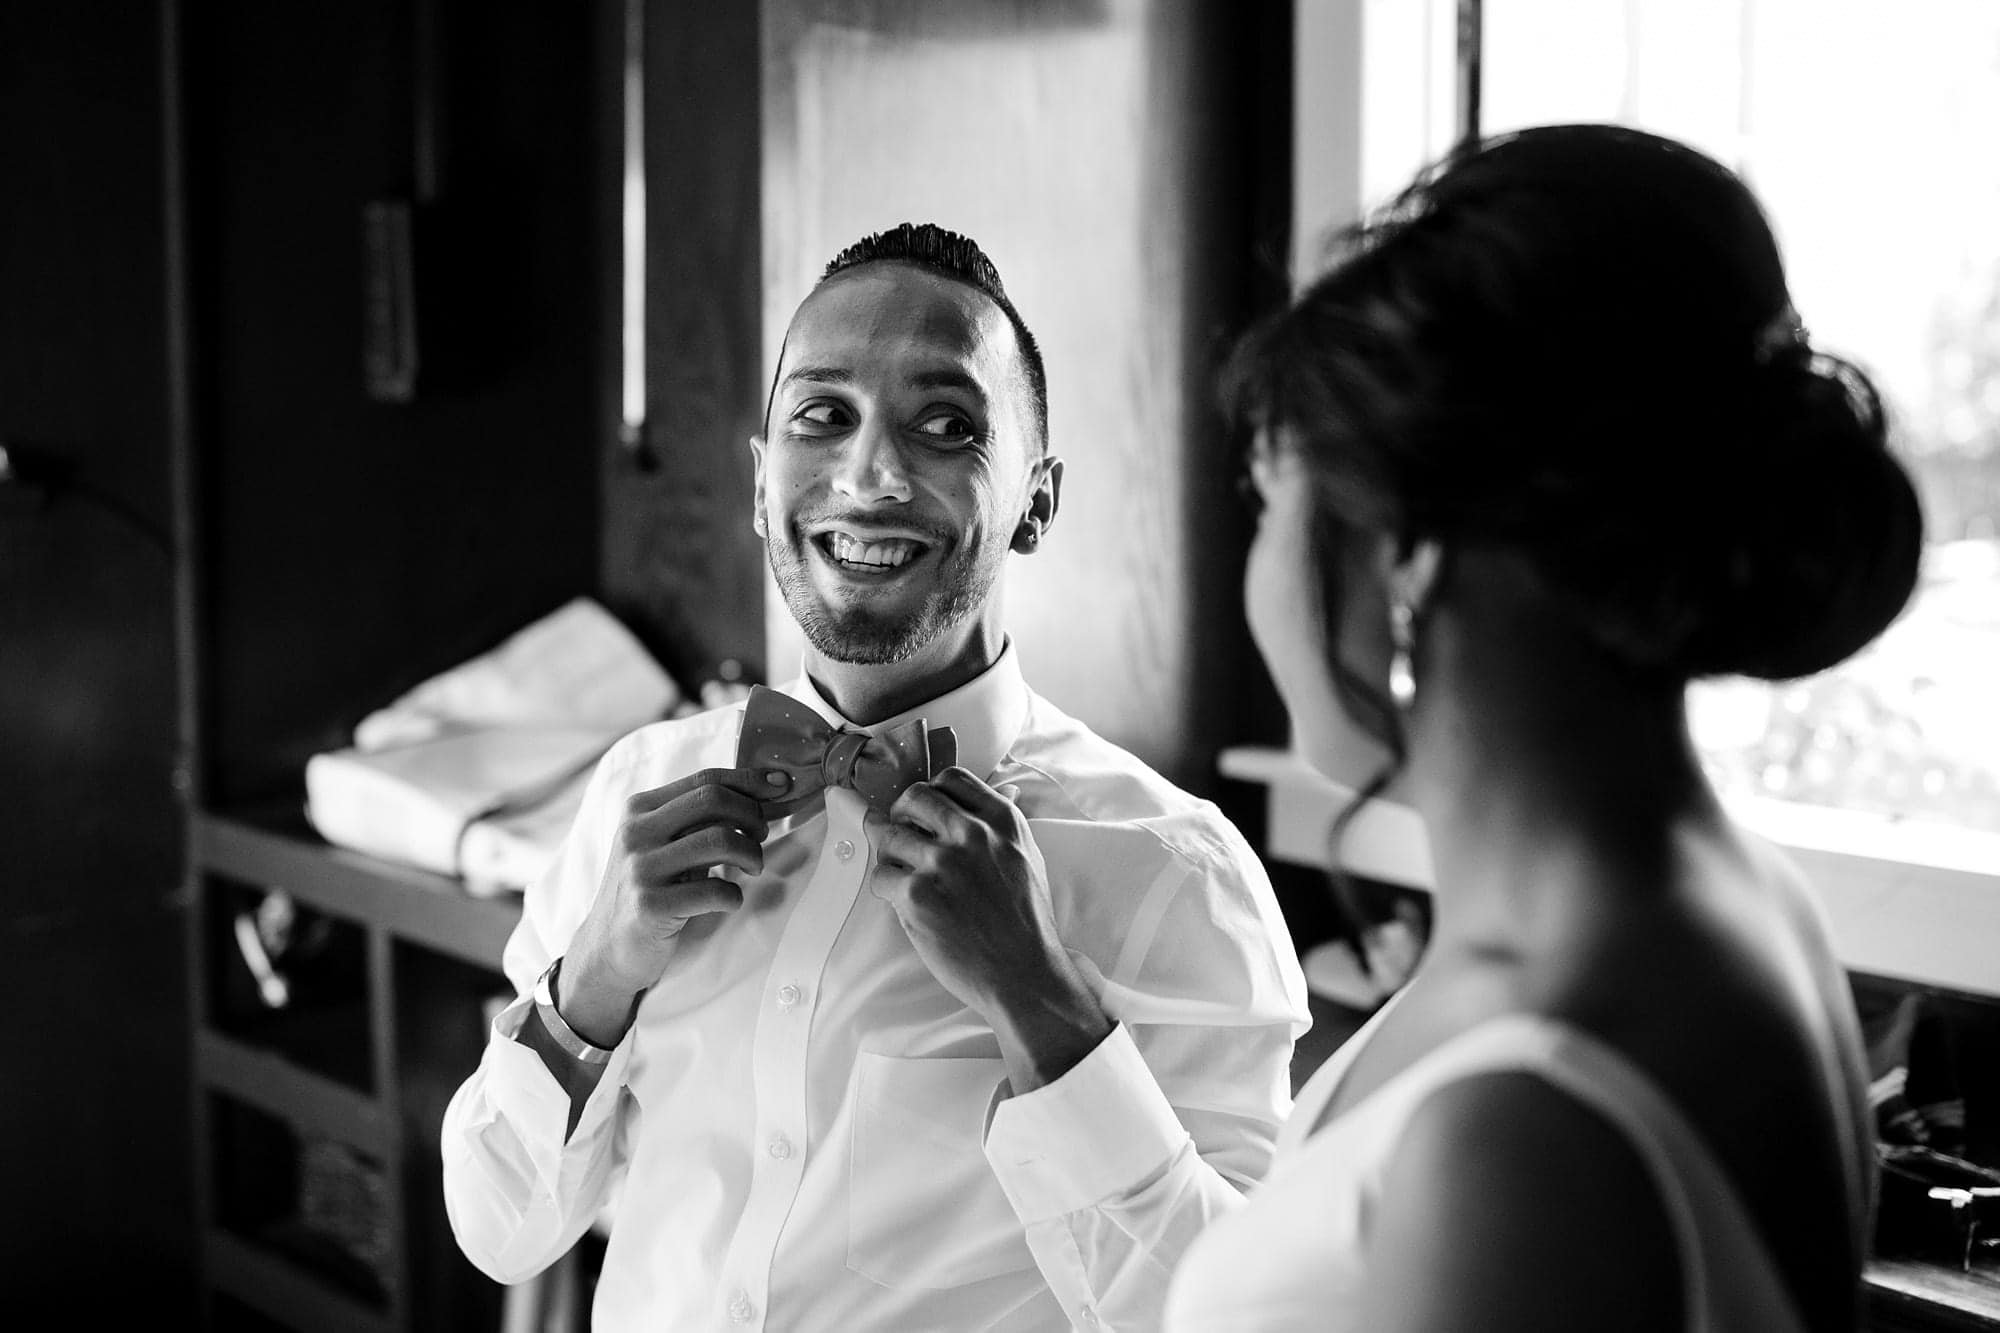 A friend adjusts his bow tie while laughing with the Bride